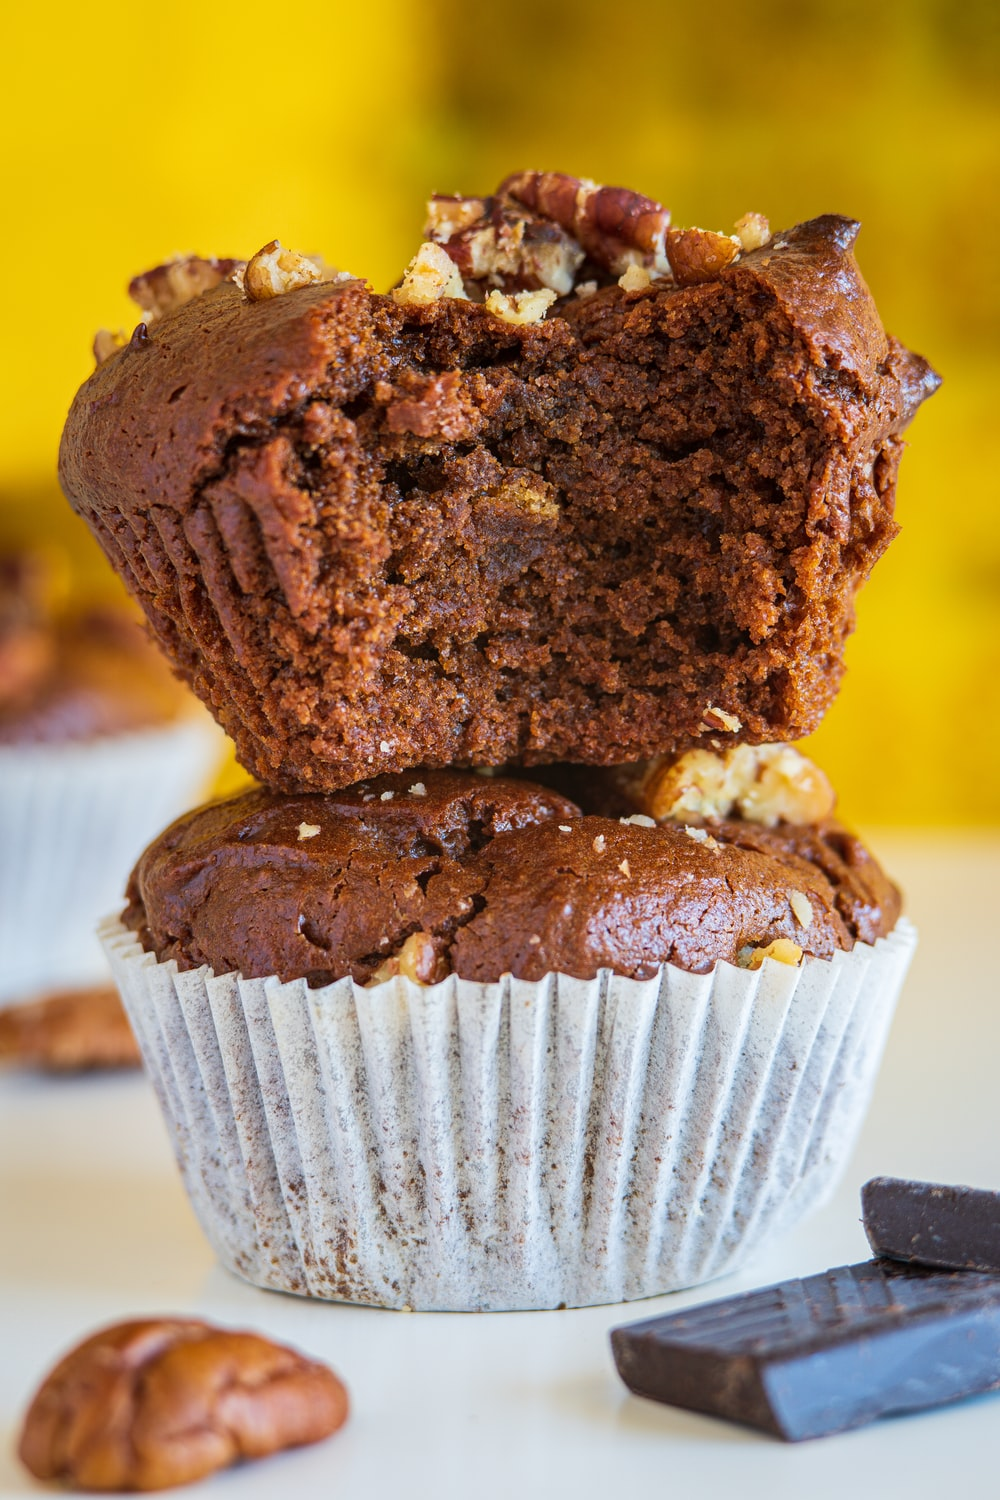 chocolate cupcake on white paper plate